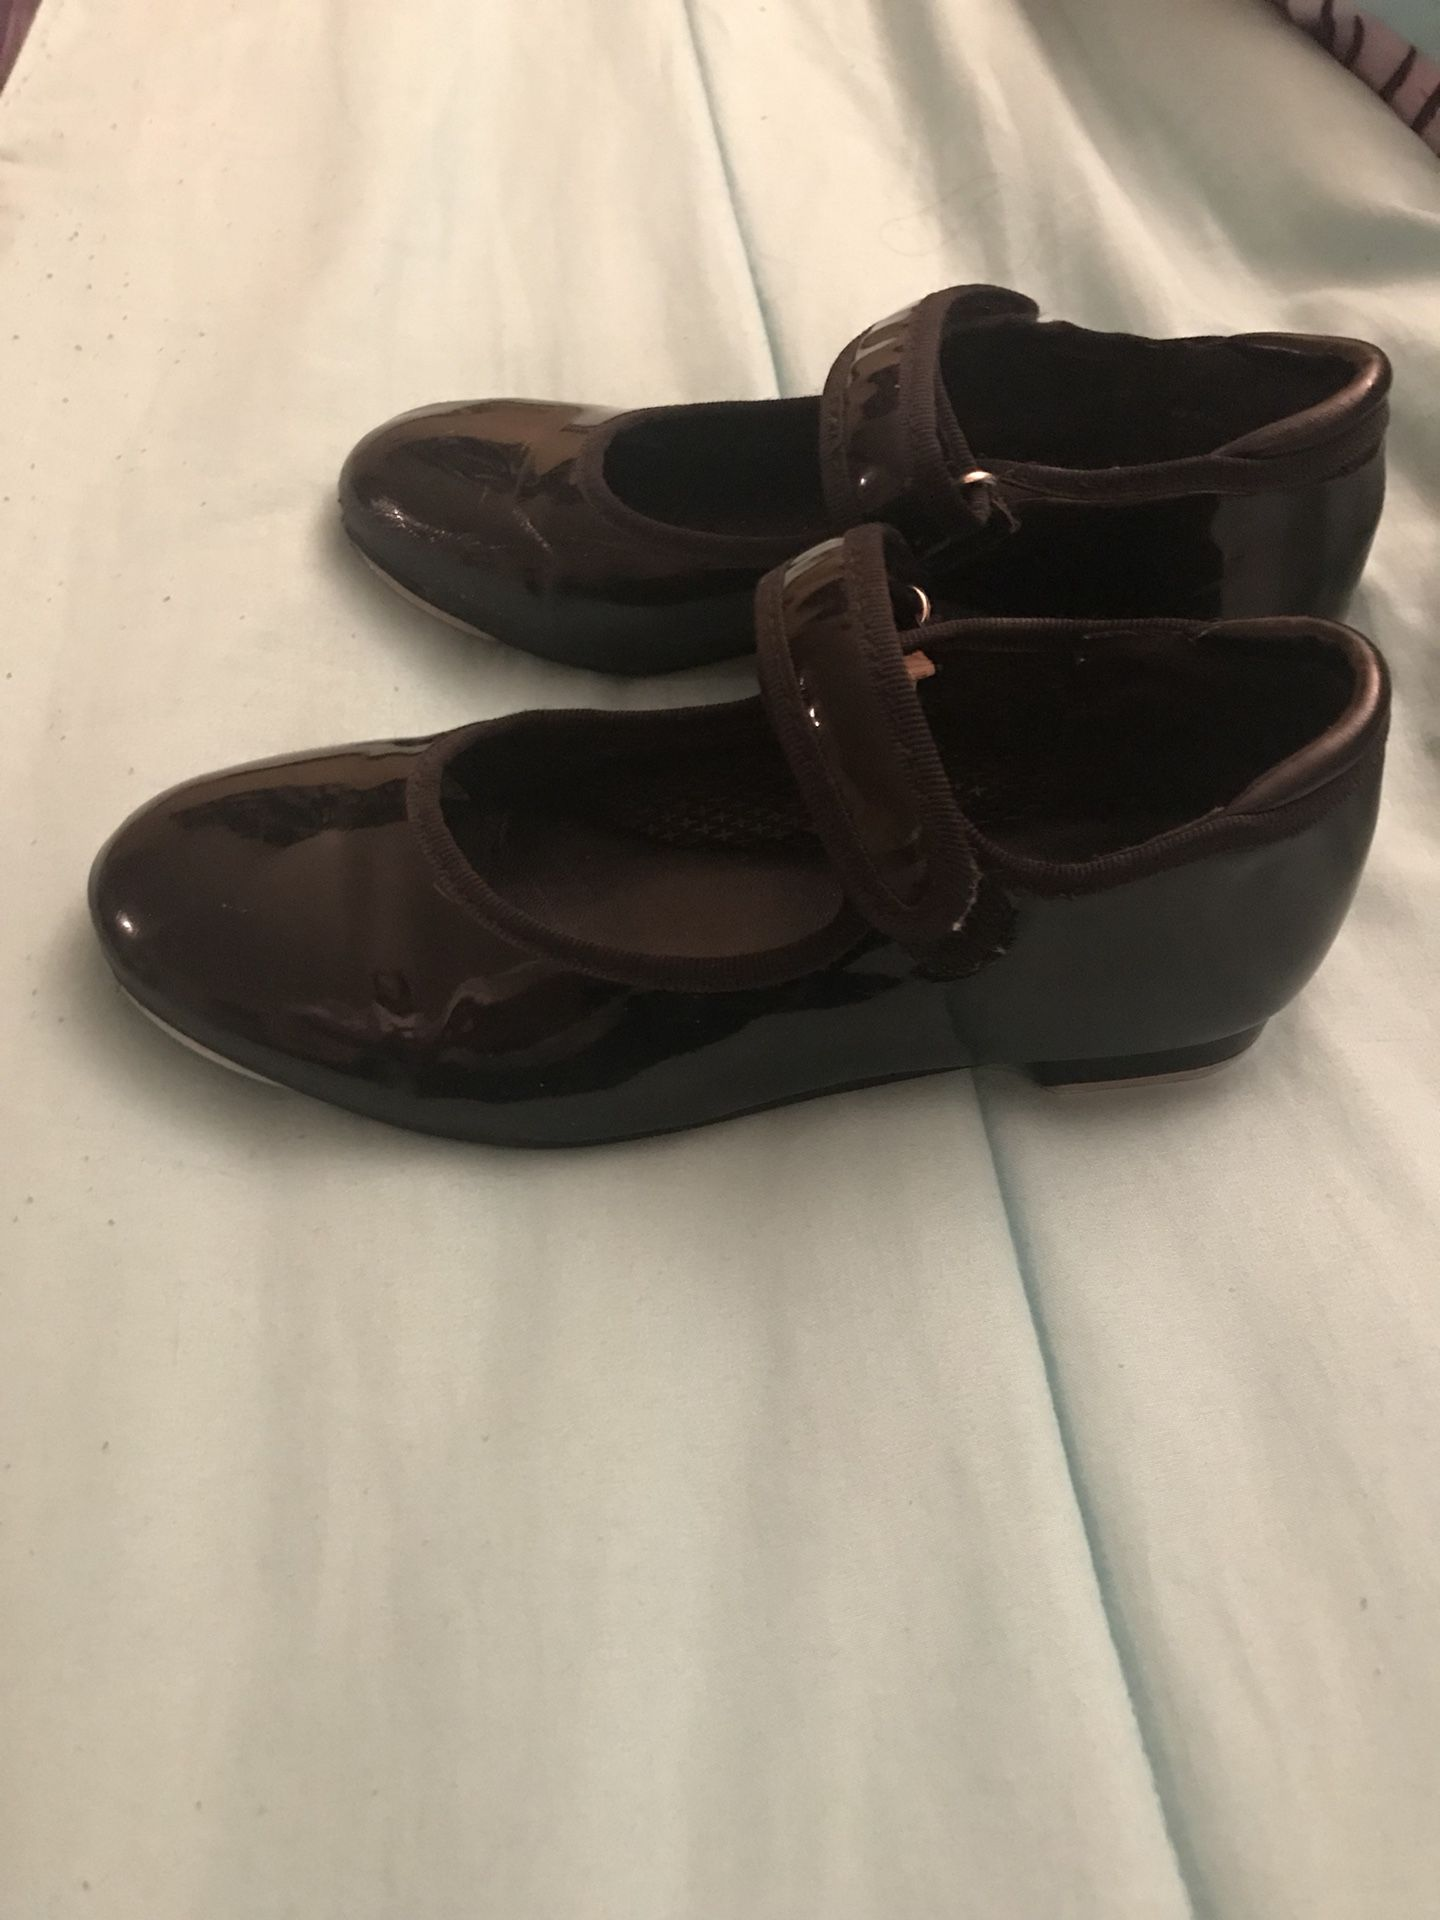 Black tap shoes for girls, kids.